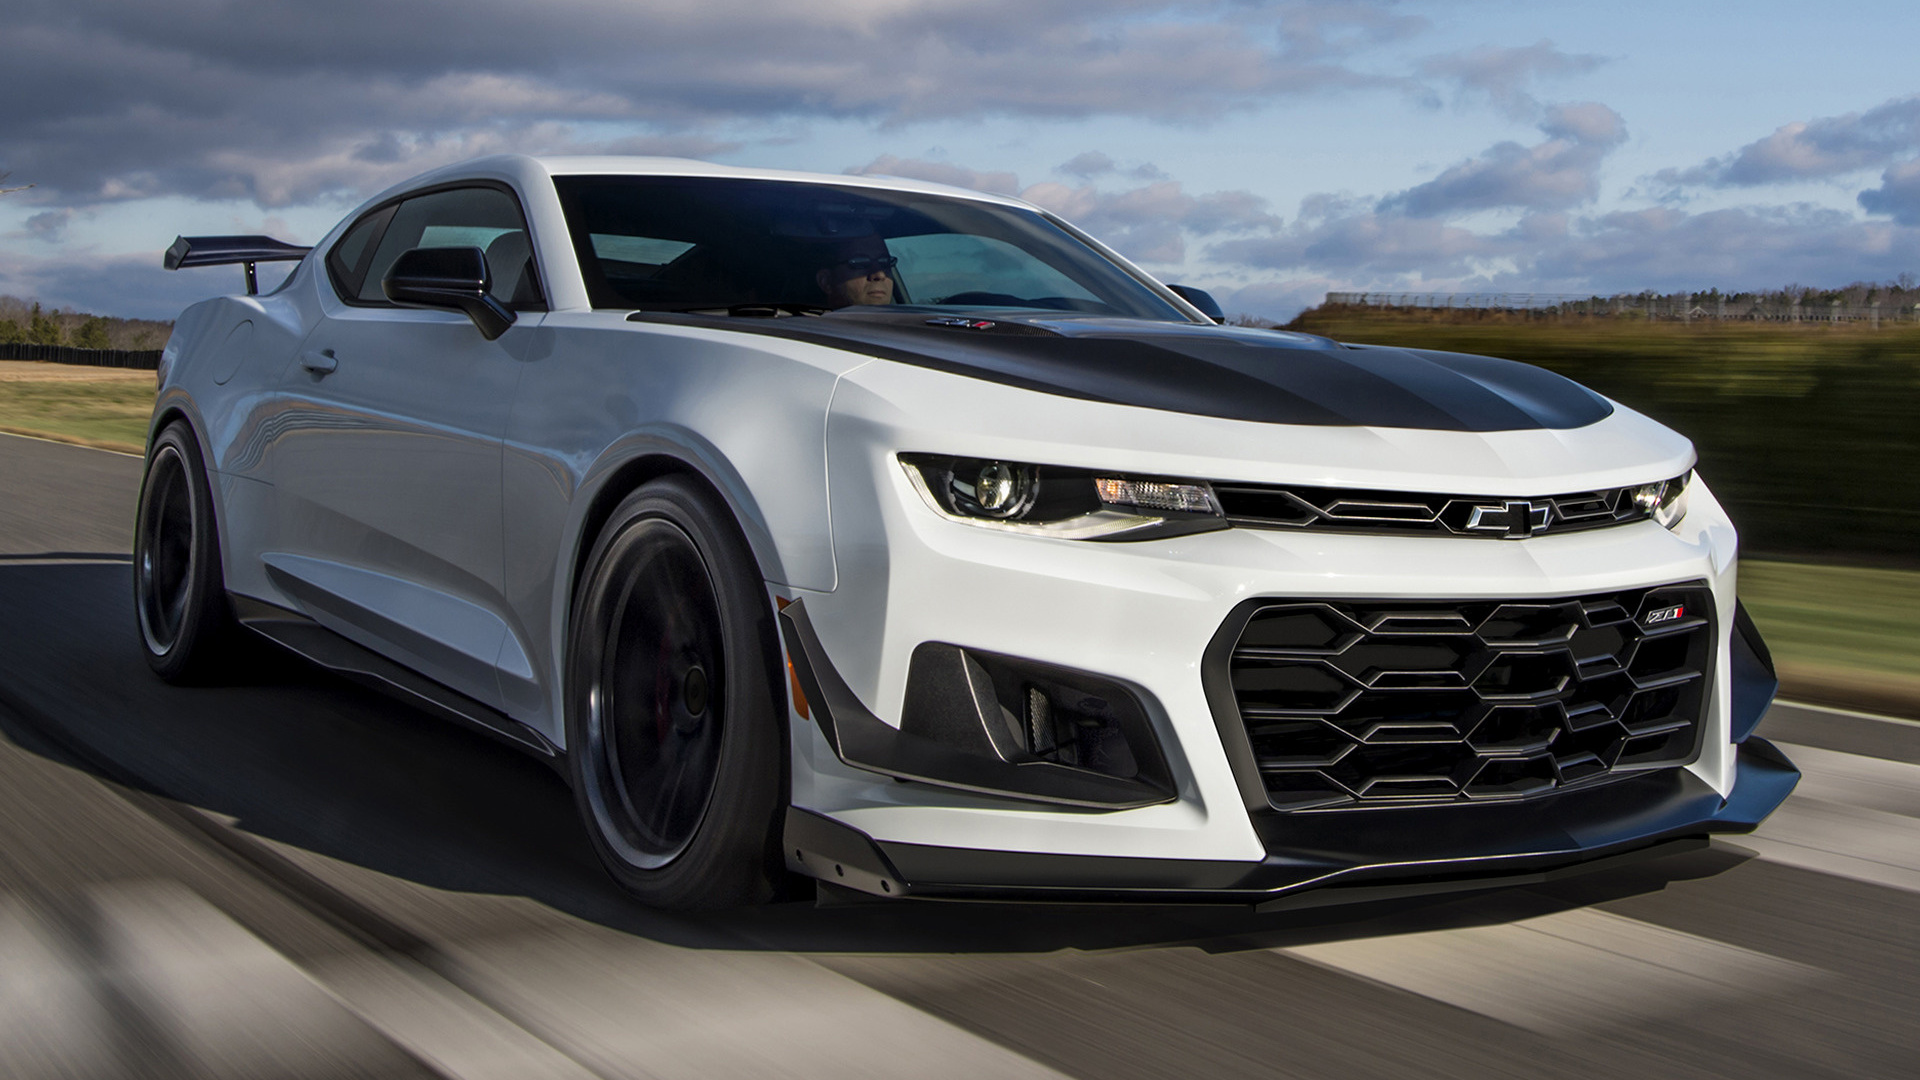 Chevrolet Camaro Zl1 1le 2018 Wallpapers And Hd Images